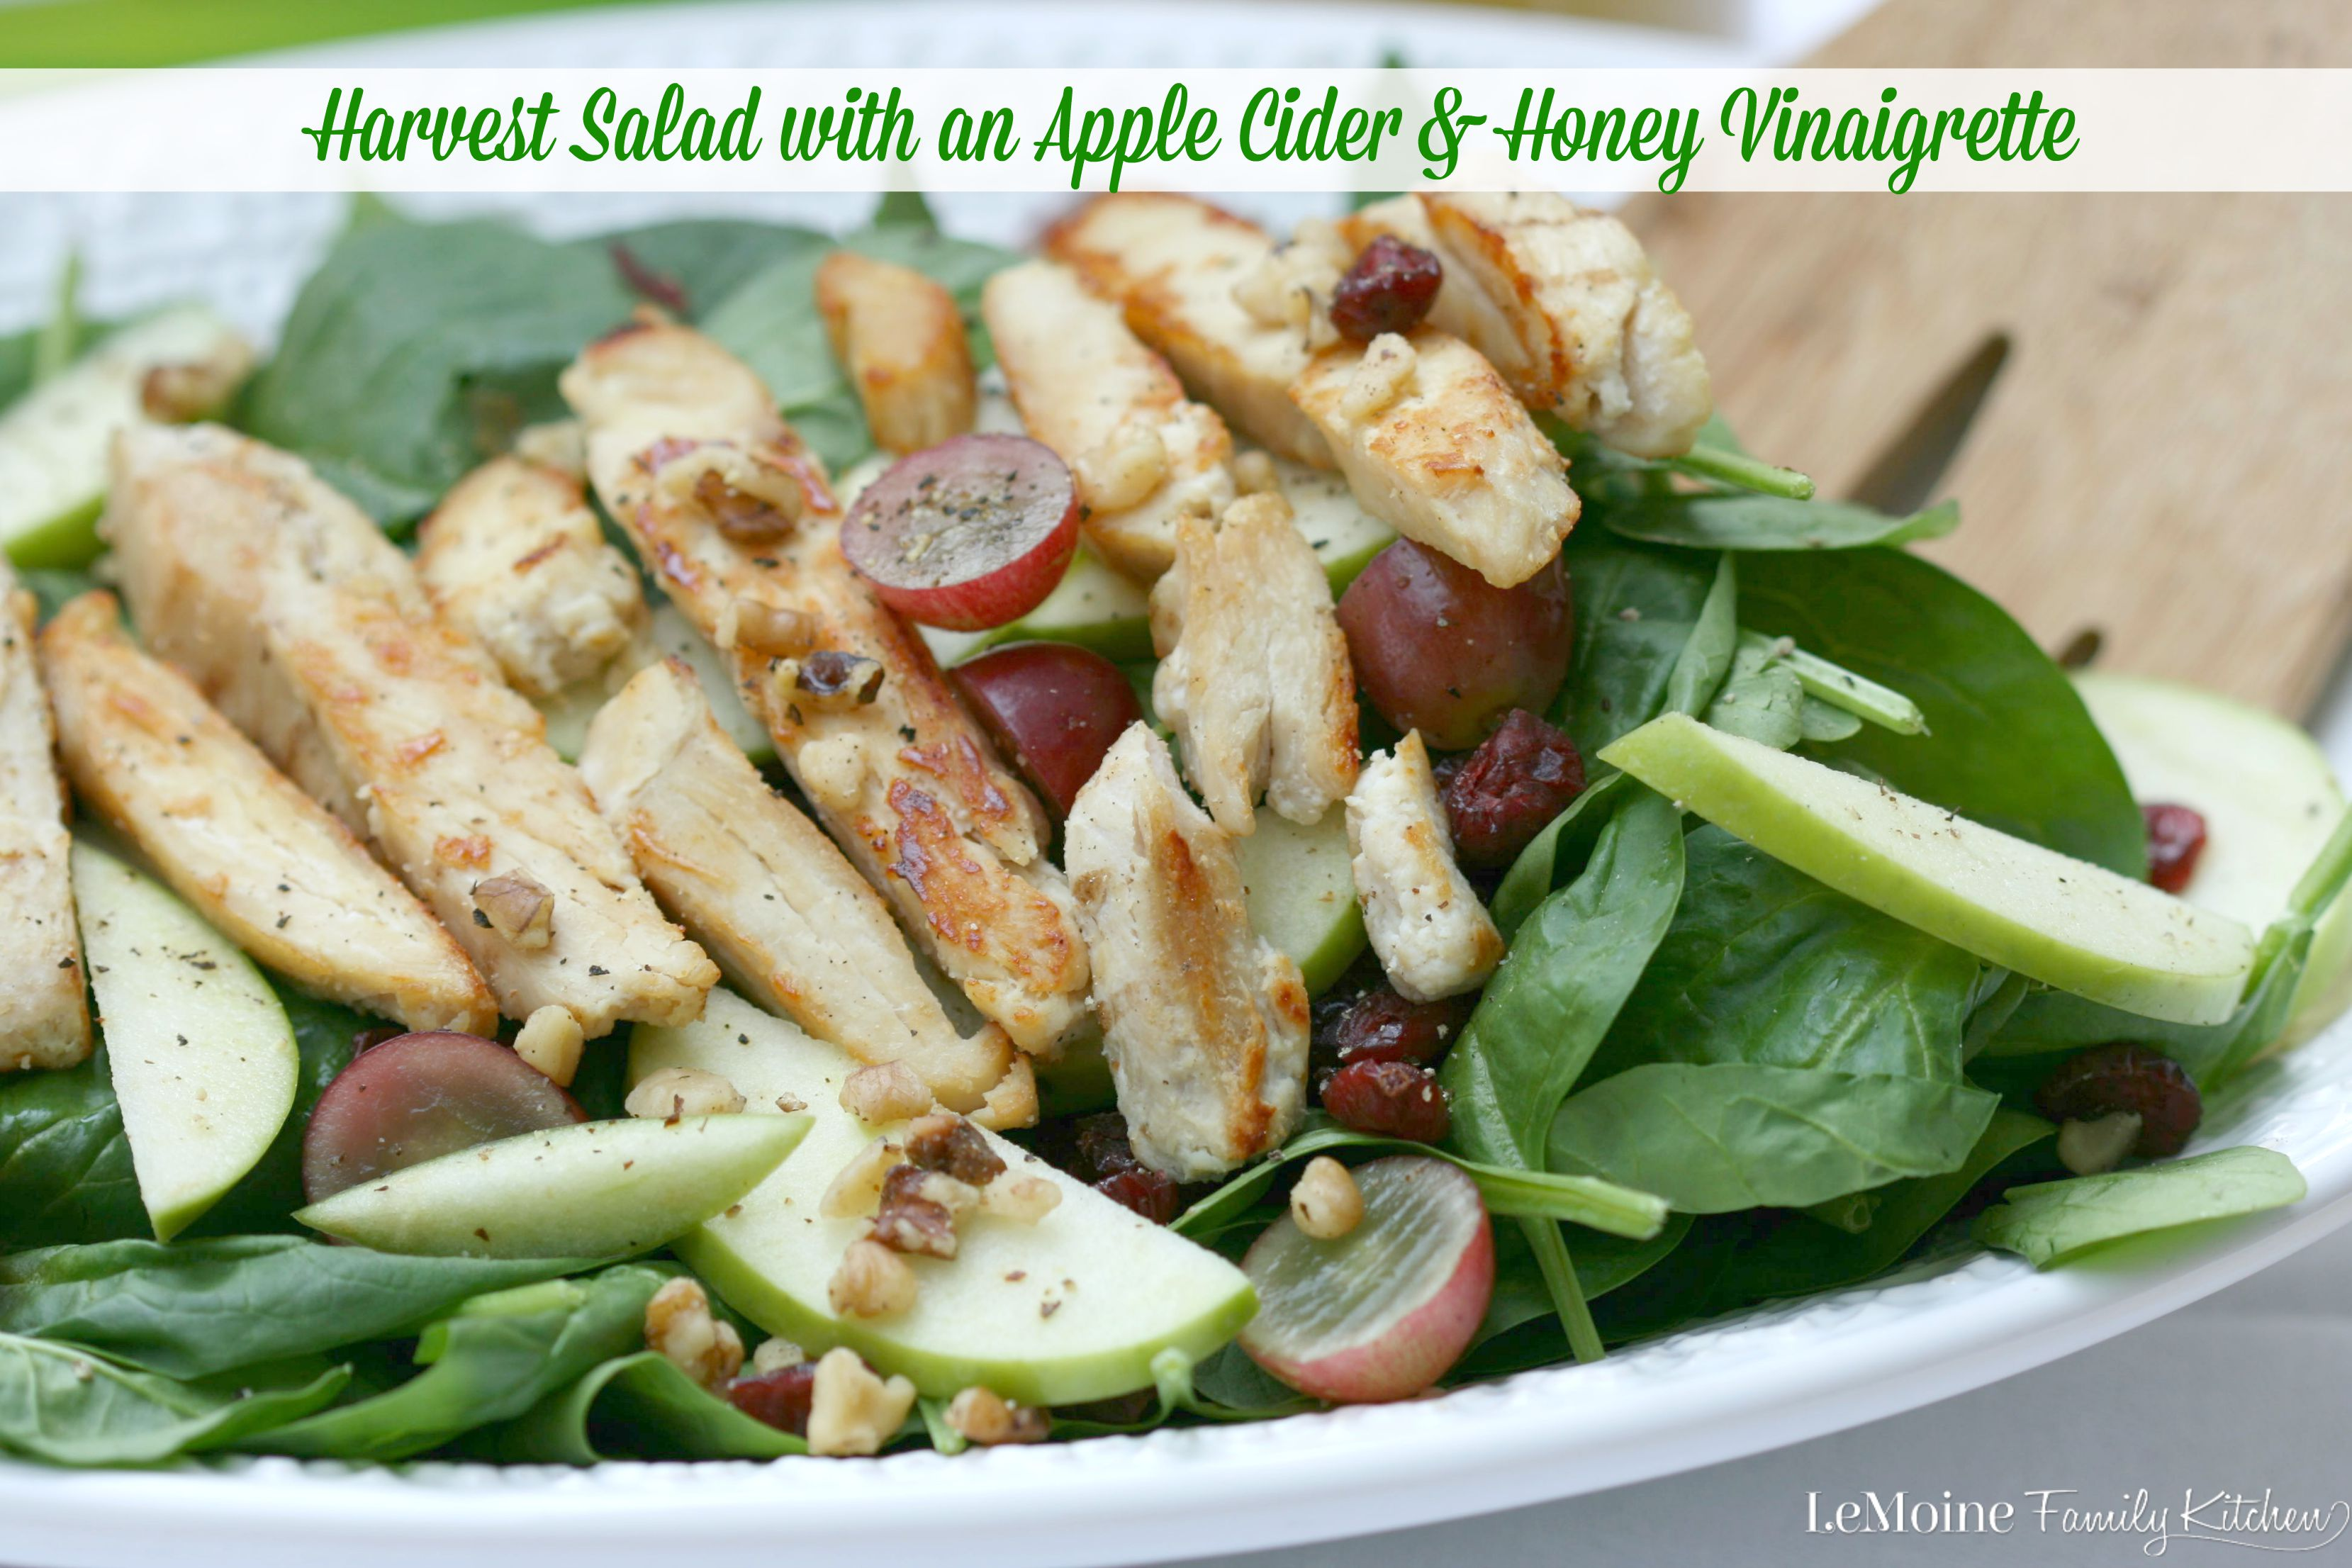 Harvest Salad with an Apple Cider & Honey Vinaigrette